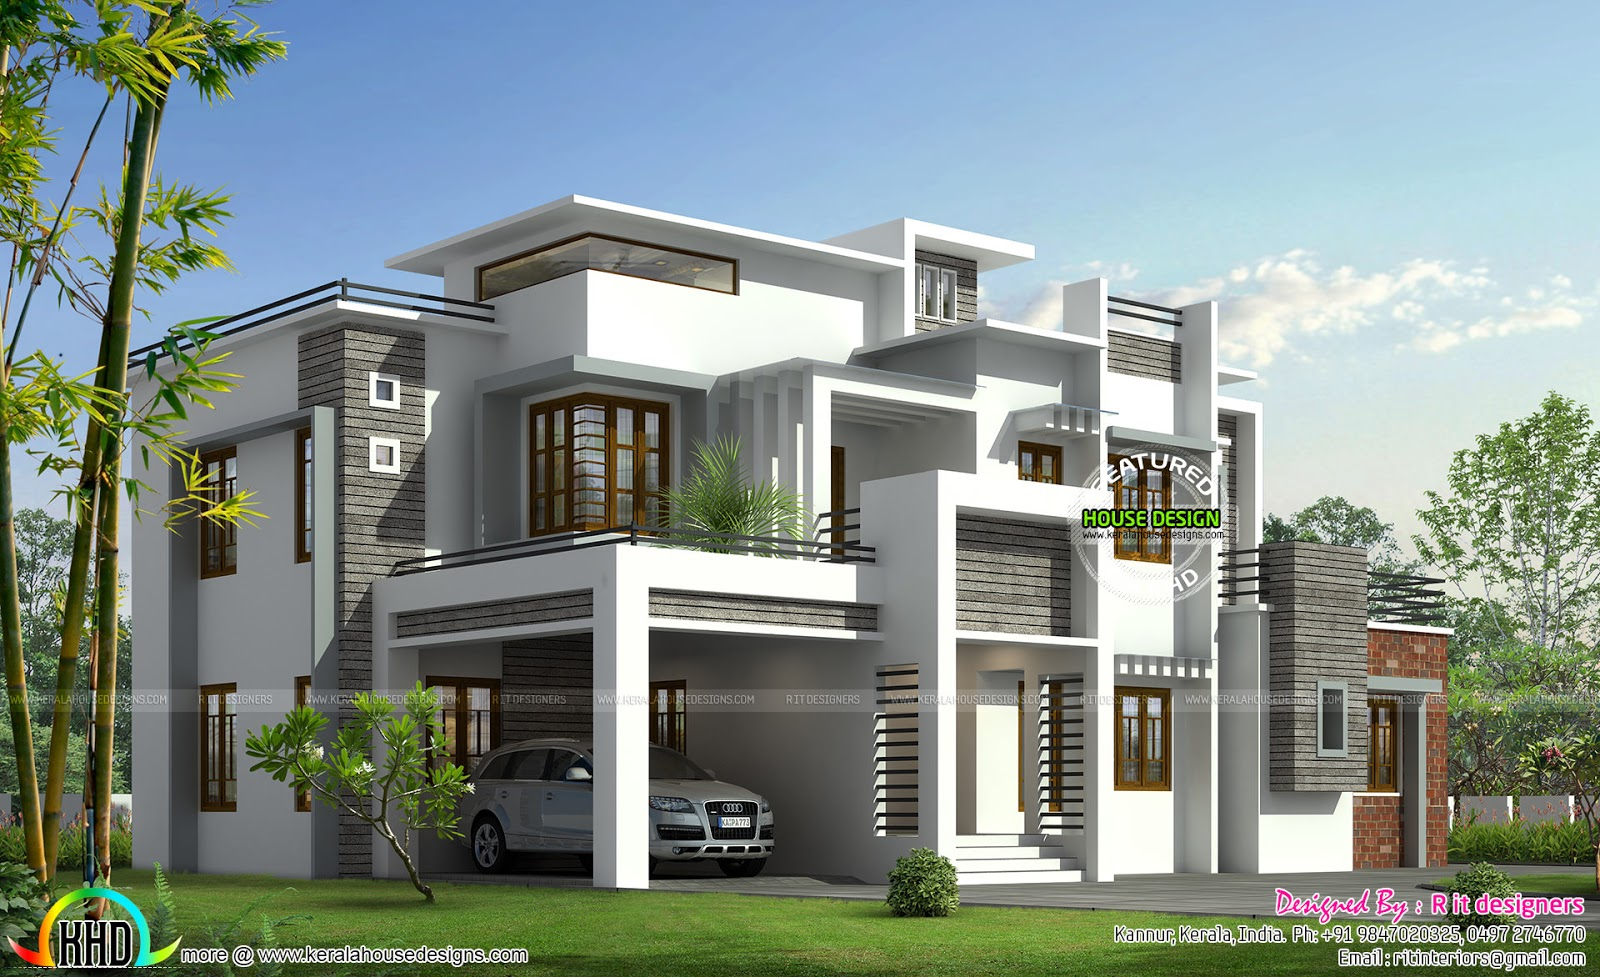 Box model contemporary house kerala home design and for Home plans com